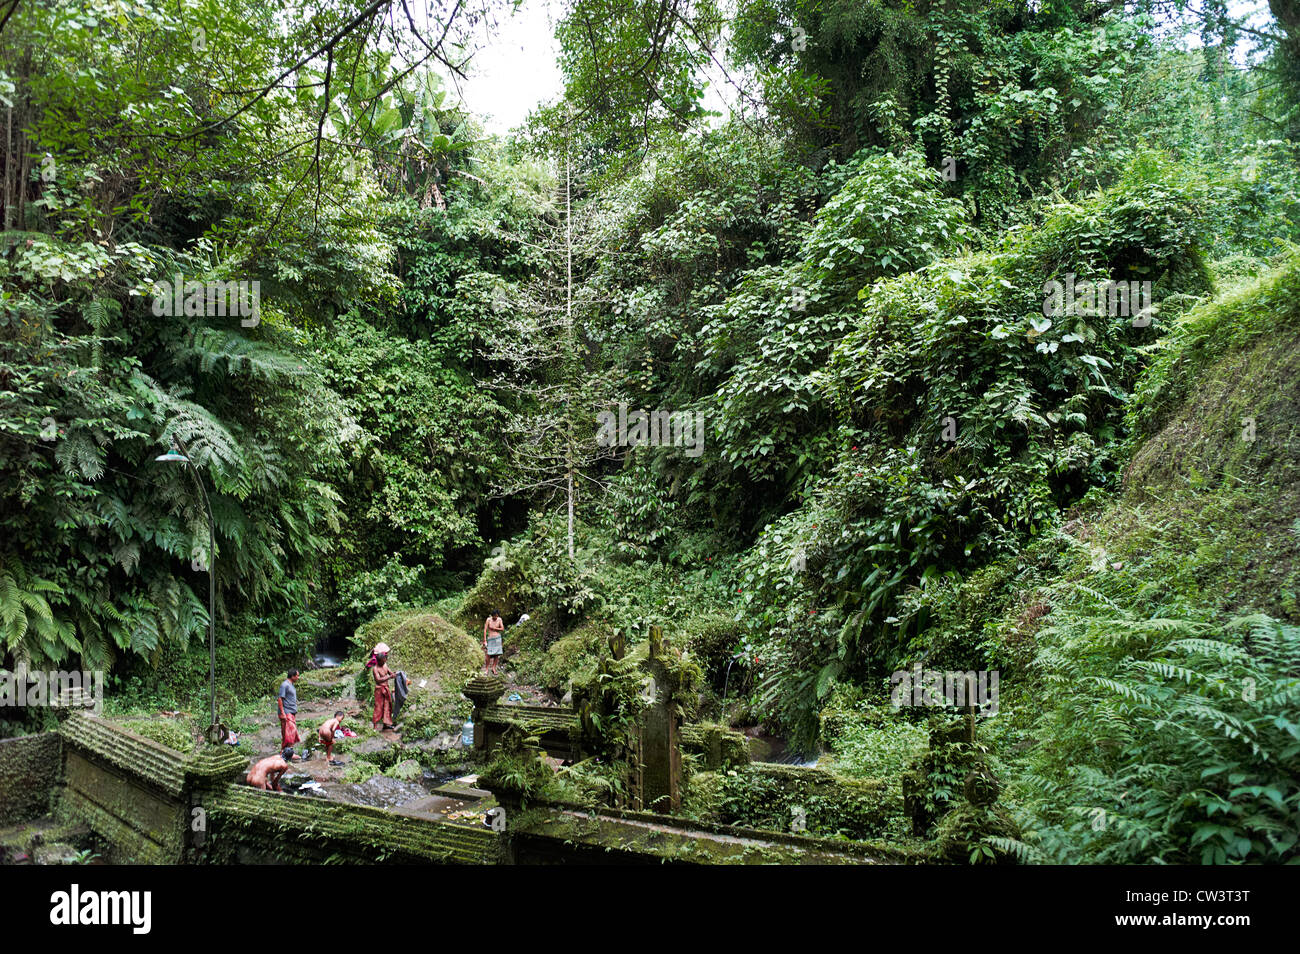 A group of men and boys bathing in the natural springs - Stock Image